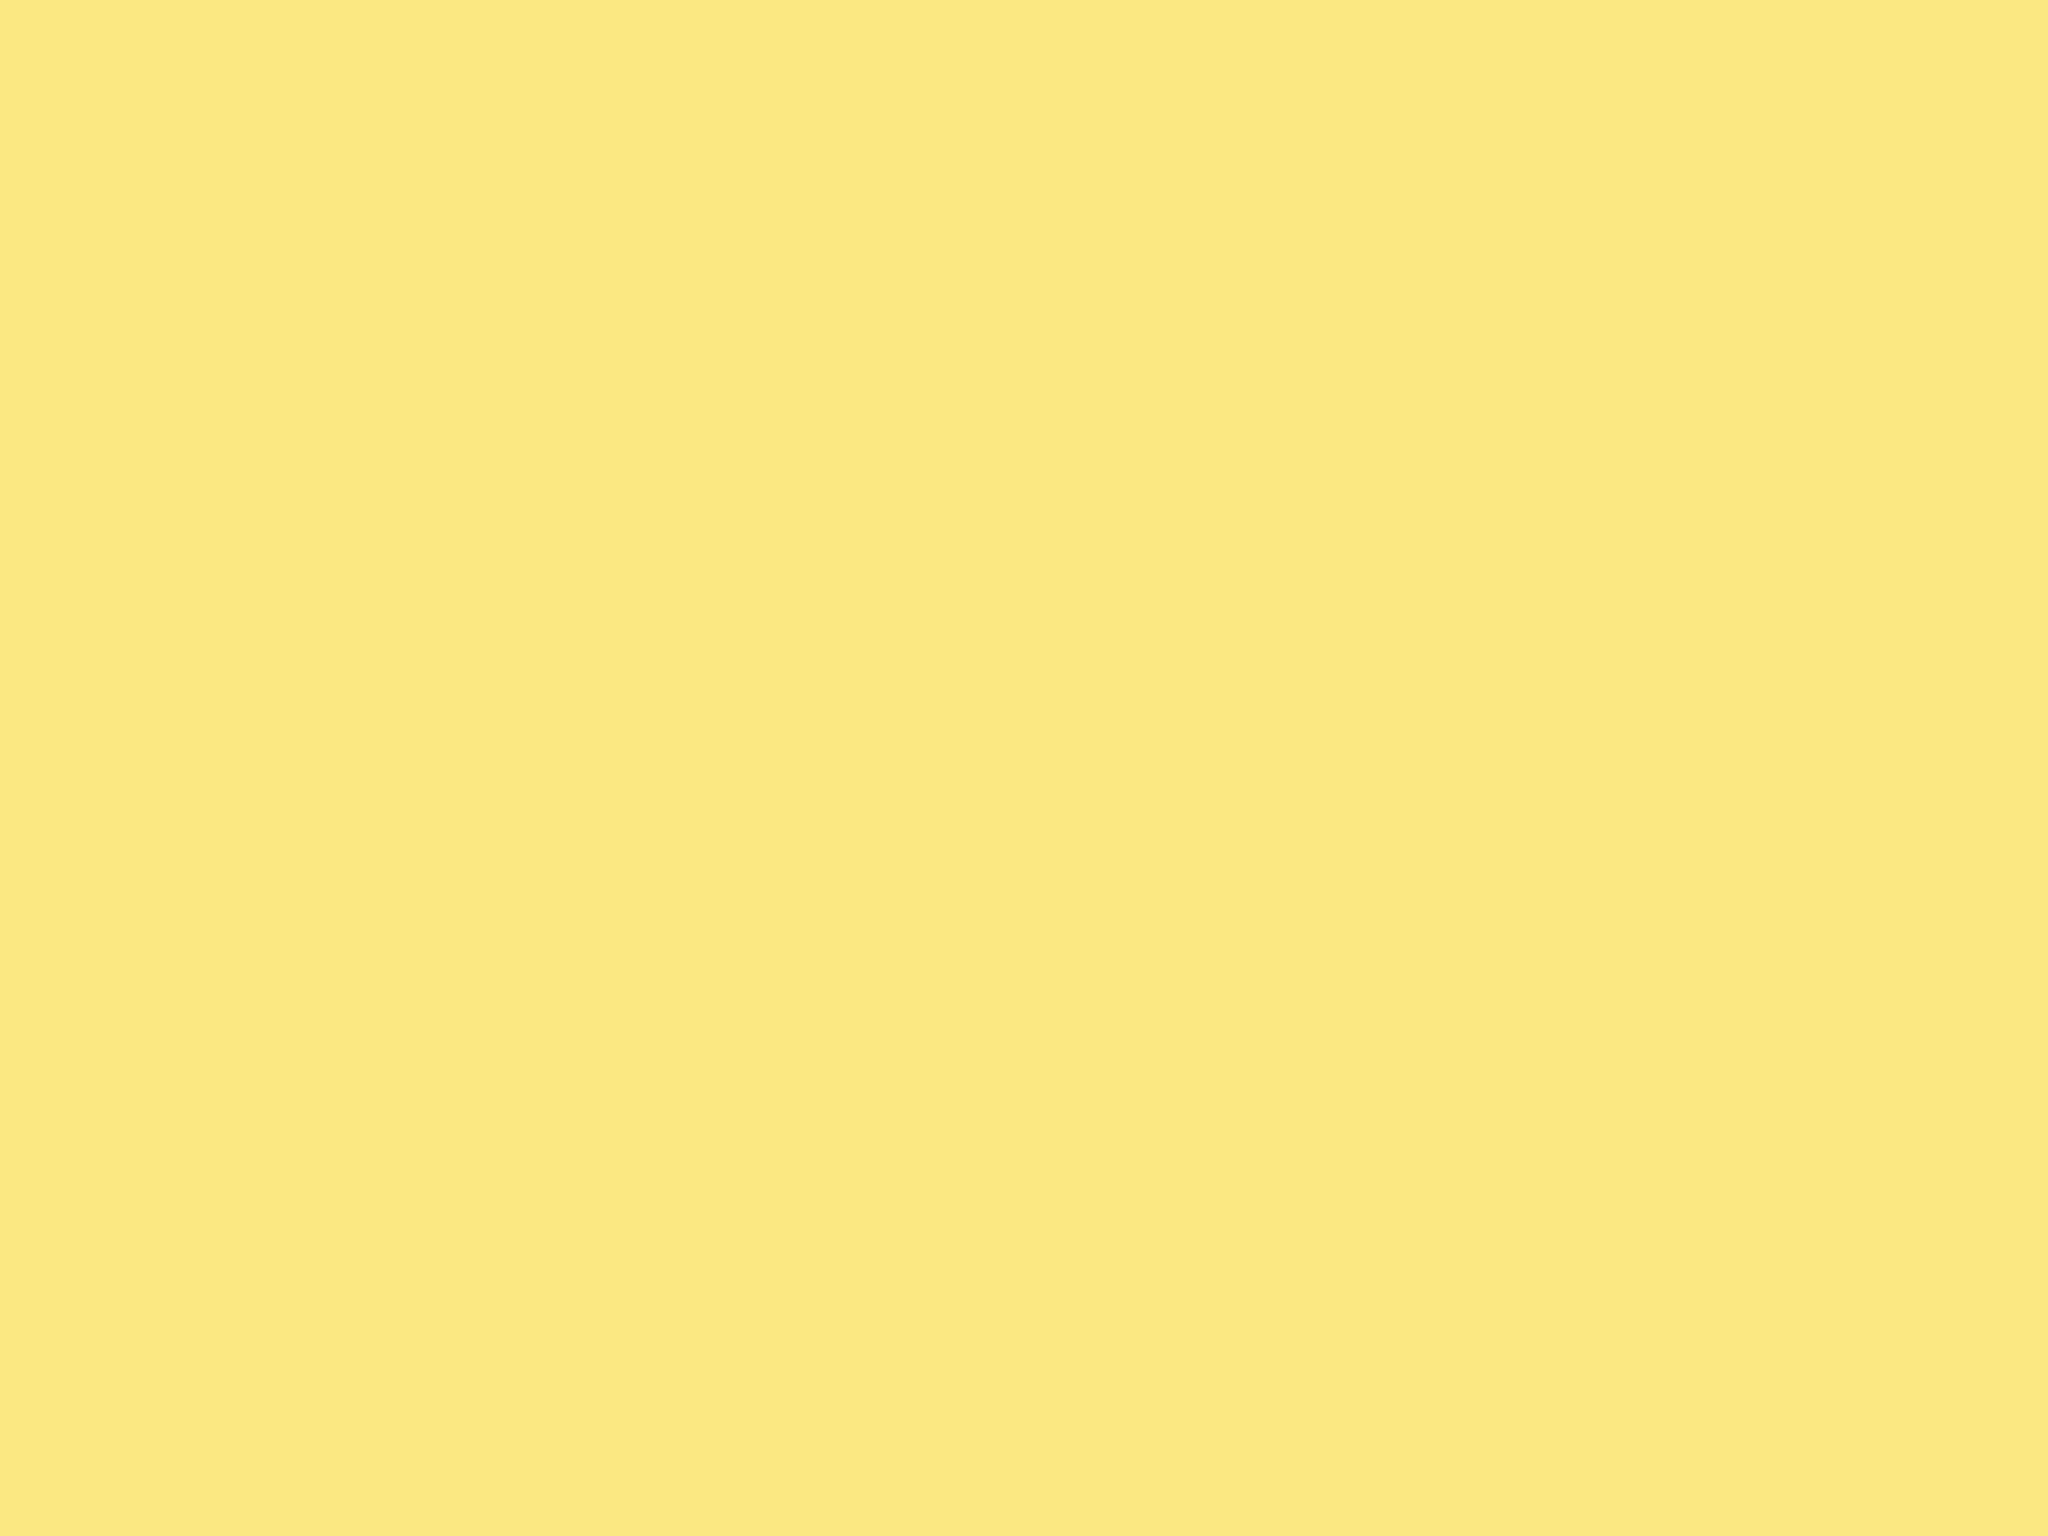 2048x1536 Yellow Crayola Solid Color Background